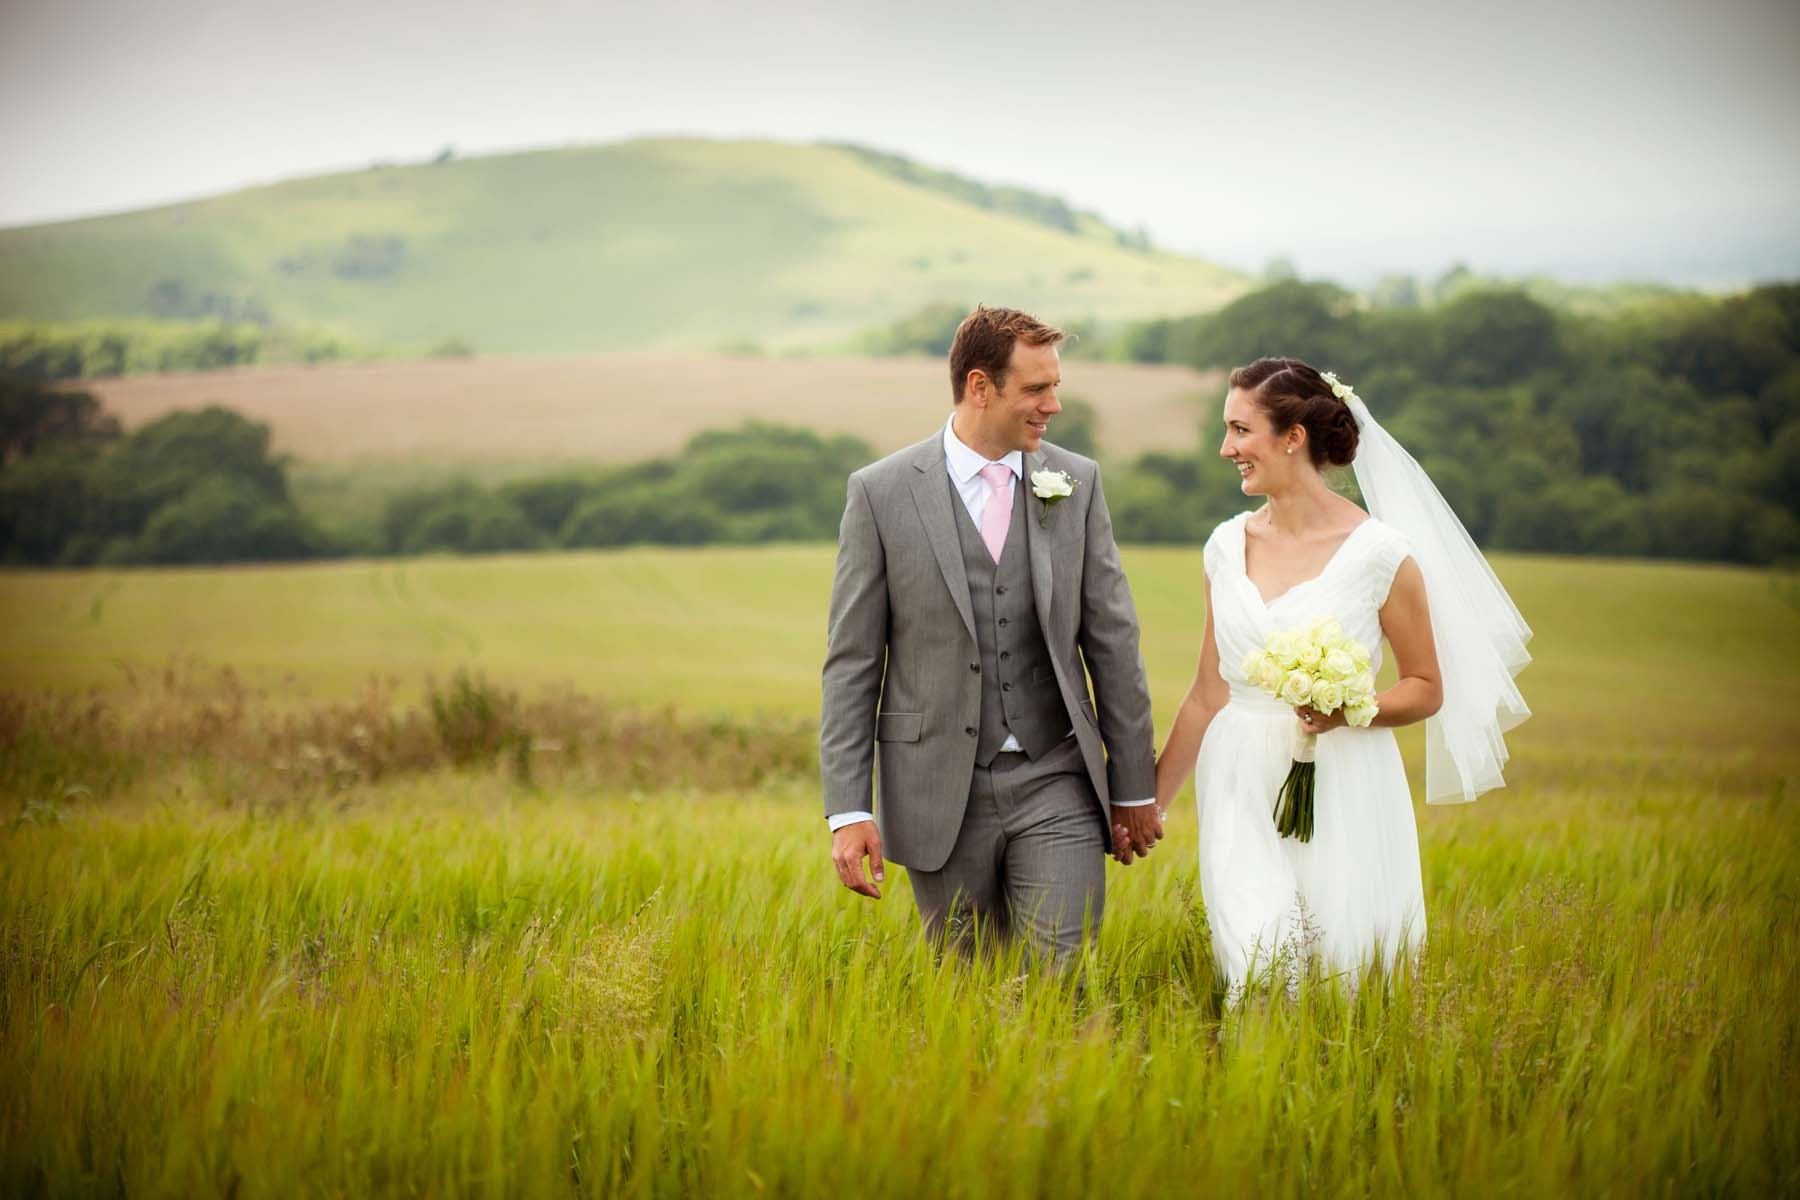 Sussex & Surrey Wedding Photographer - Bride & Groom (1)